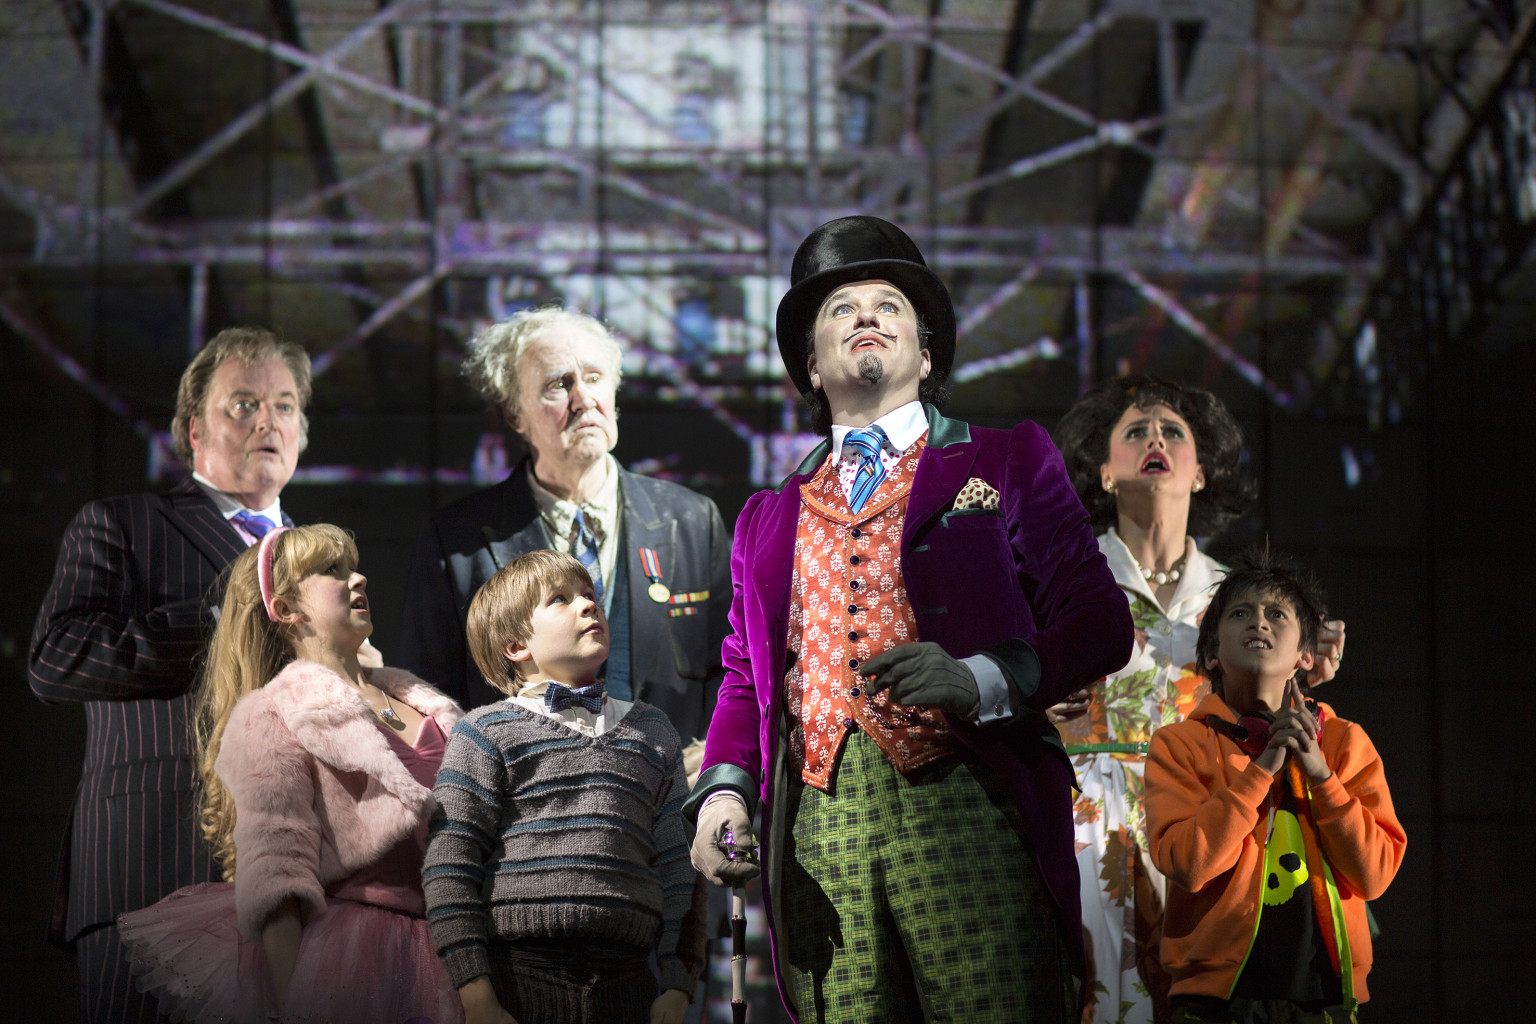 a delicious wonka whipple scrumptious treat charlie and the a delicious wonka whipple scrumptious treat charlie and the chocolate factory musical review the huffington post